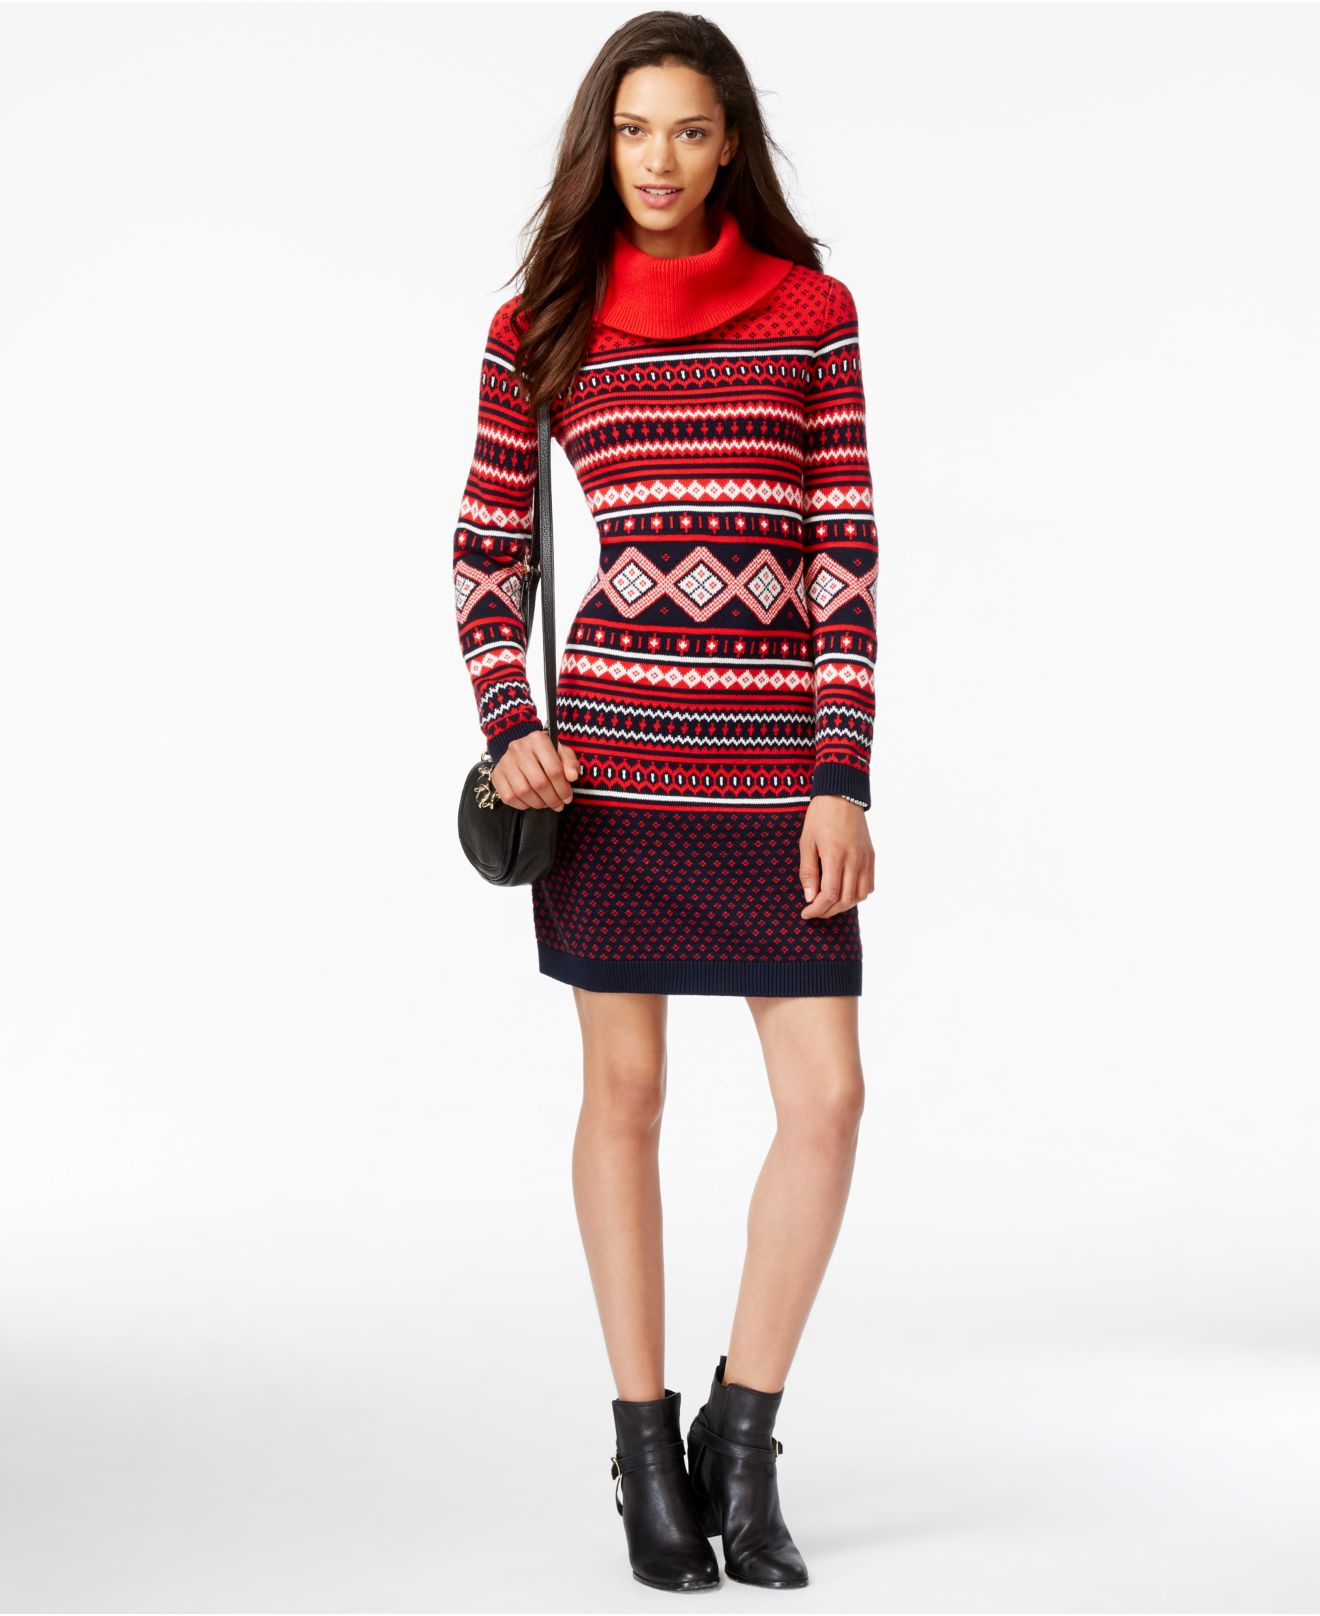 Tommy hilfiger Printed Cowl-neck Sweater Dress in Red   Lyst